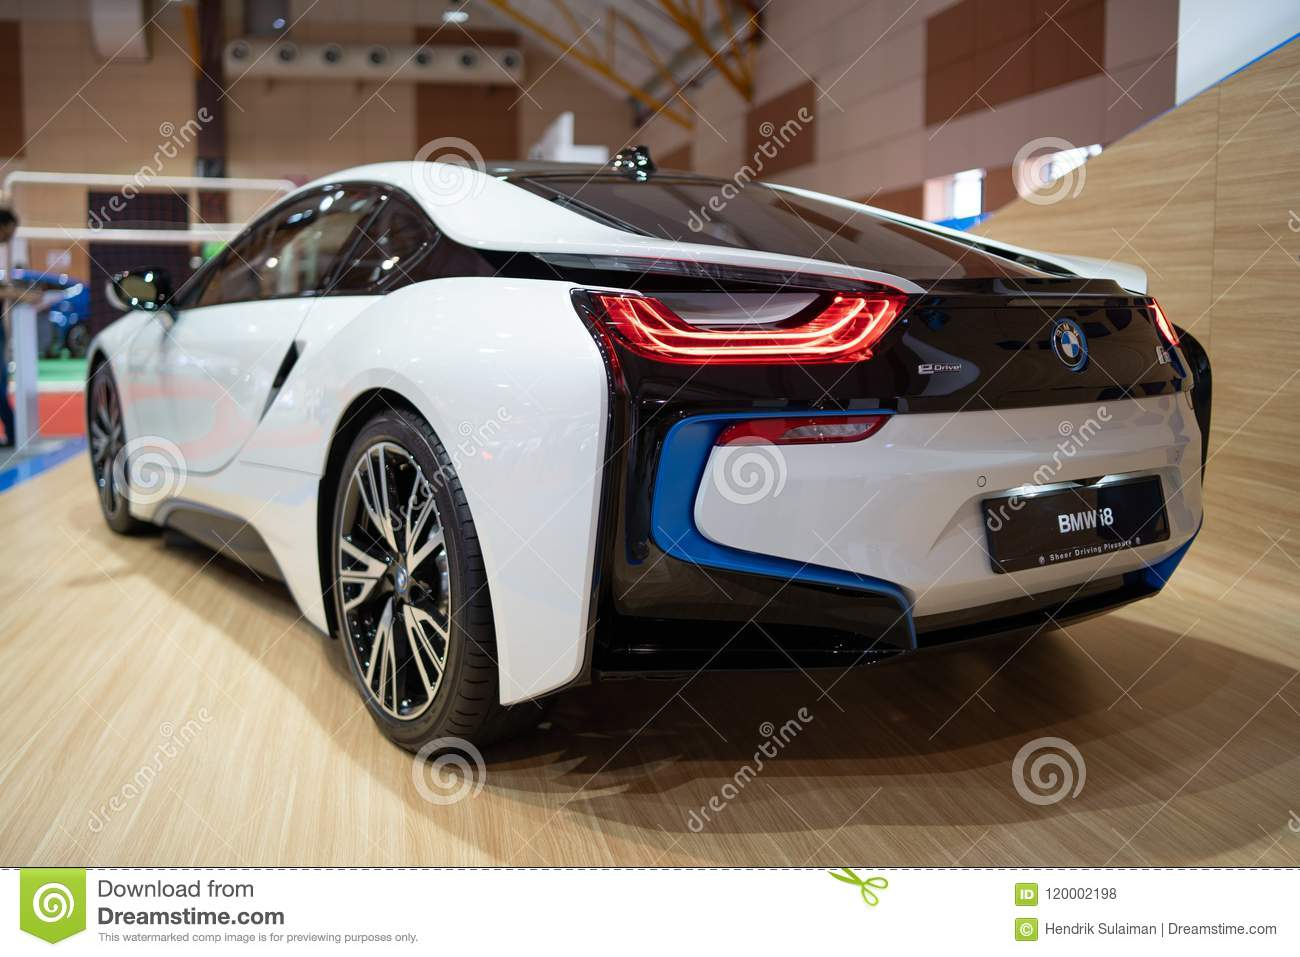 New Bmw I8 2018 Editorial Stock Photo Image Of Sports 120002198